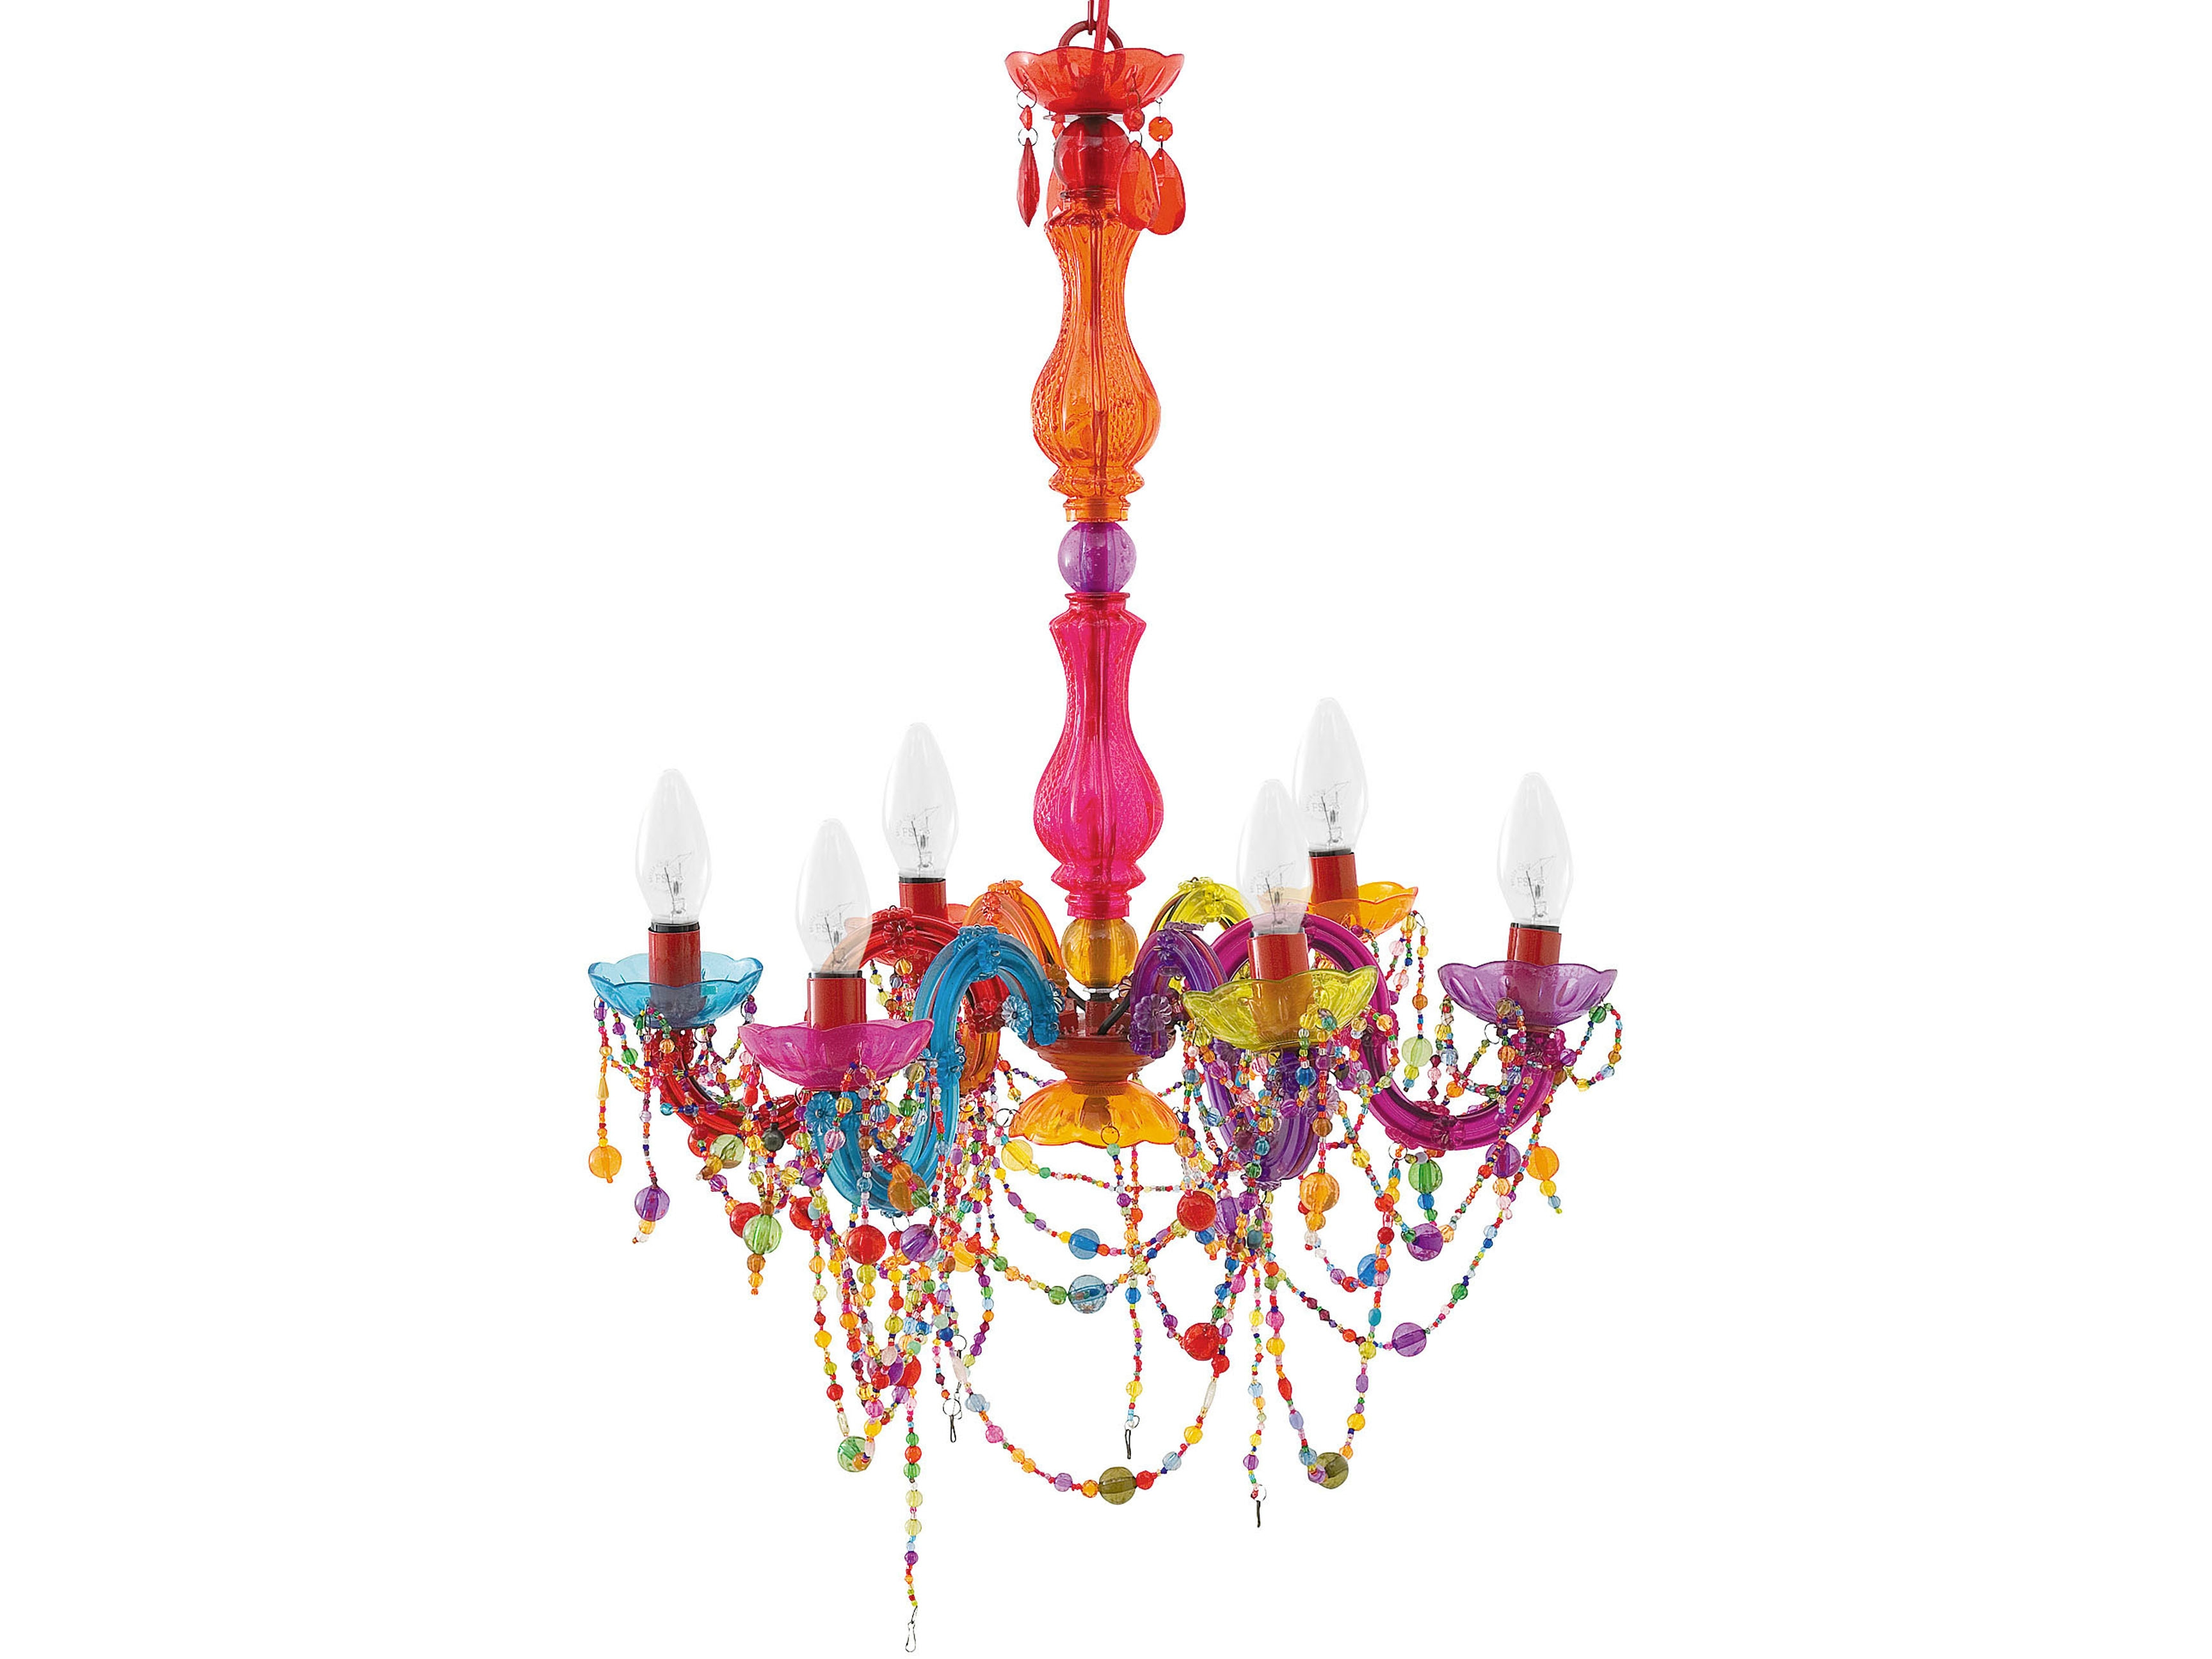 Present Time Bv Product Lamp Chandelier Gypsy Within Gypsy Chandeliers (View 16 of 25)